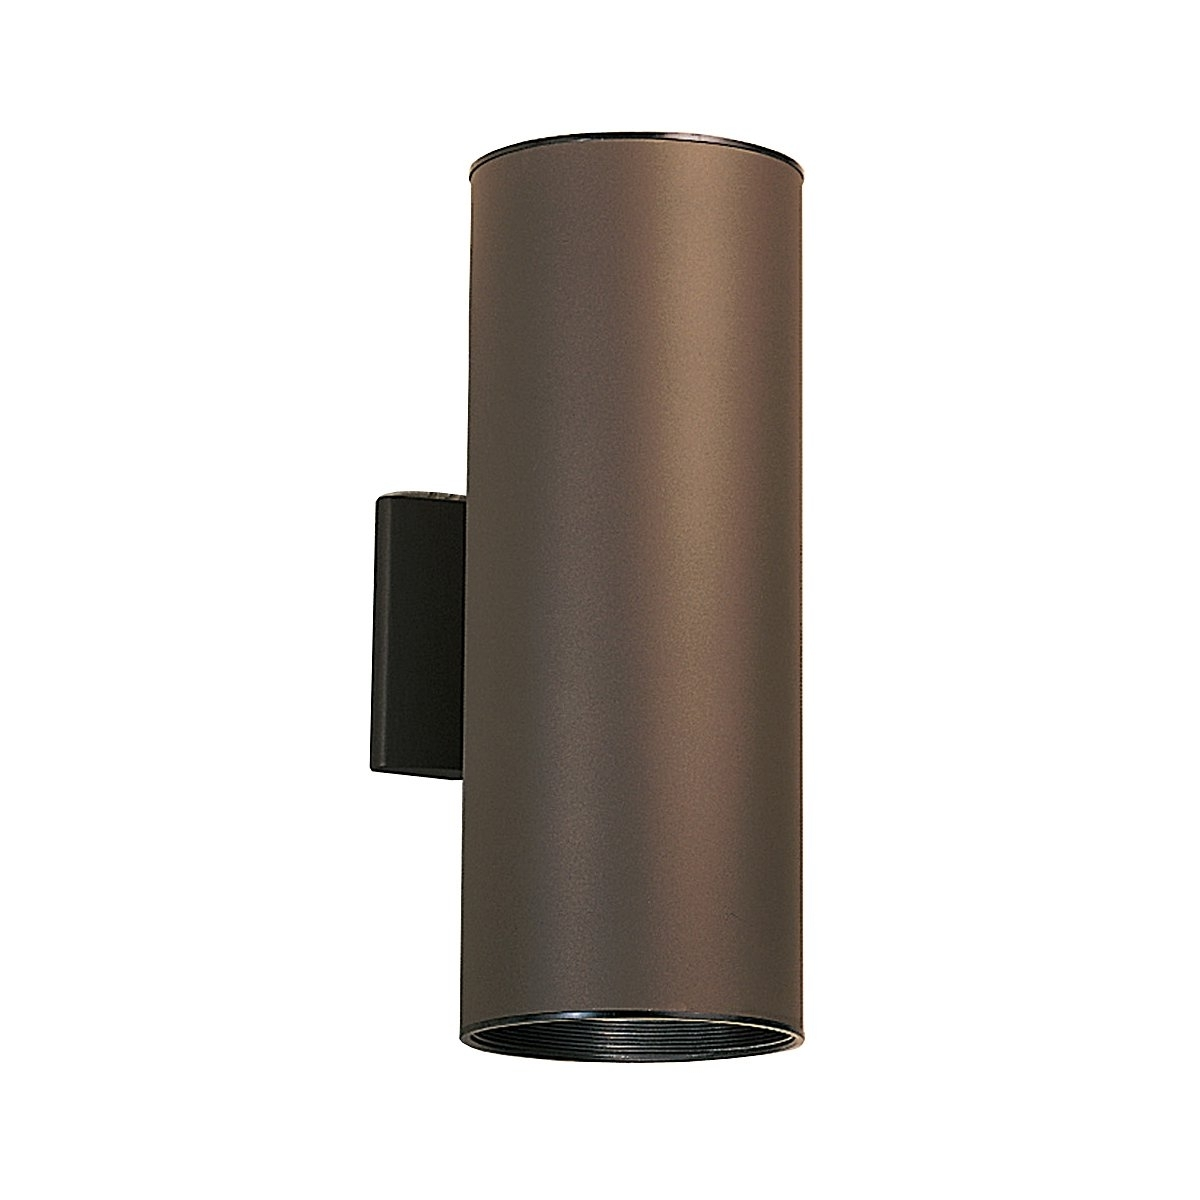 Top 20 of outdoor wall lights at john lewis outdoor wall lights at john lewis pertaining to fashionable new commercial exterior wall lights 49 about mozeypictures Image collections